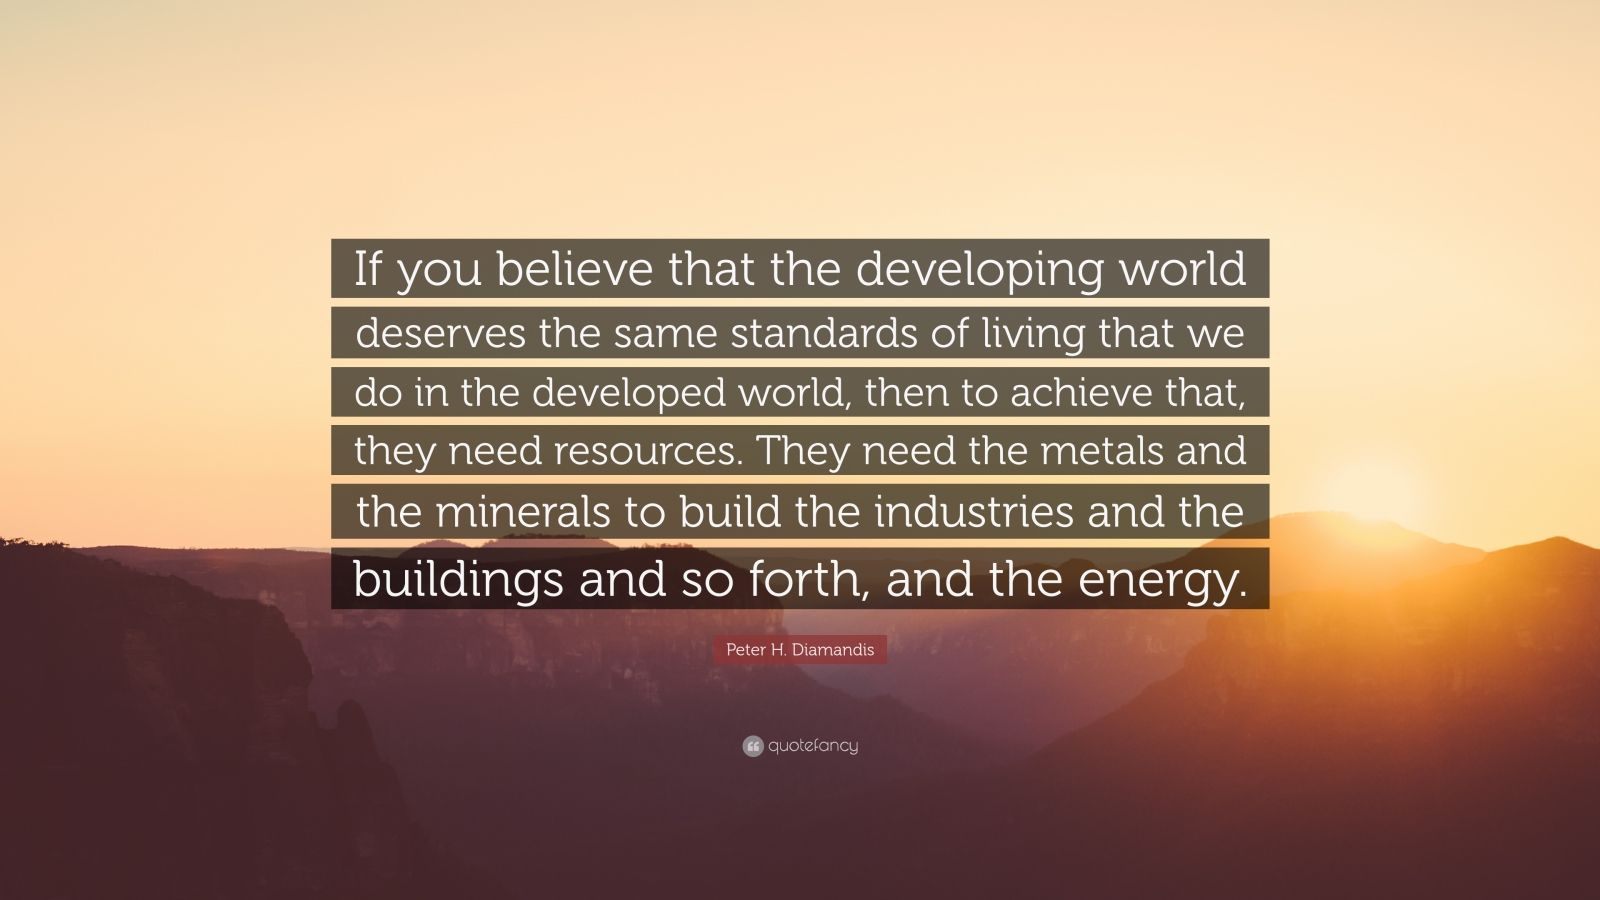 """Peter H. Diamandis Quote: """"If you believe that the developing world deserves the same standards of living that we do in the developed world, then to achieve that, they need resources. They need the metals and the minerals to build the industries and the buildings and so forth, and the energy."""""""